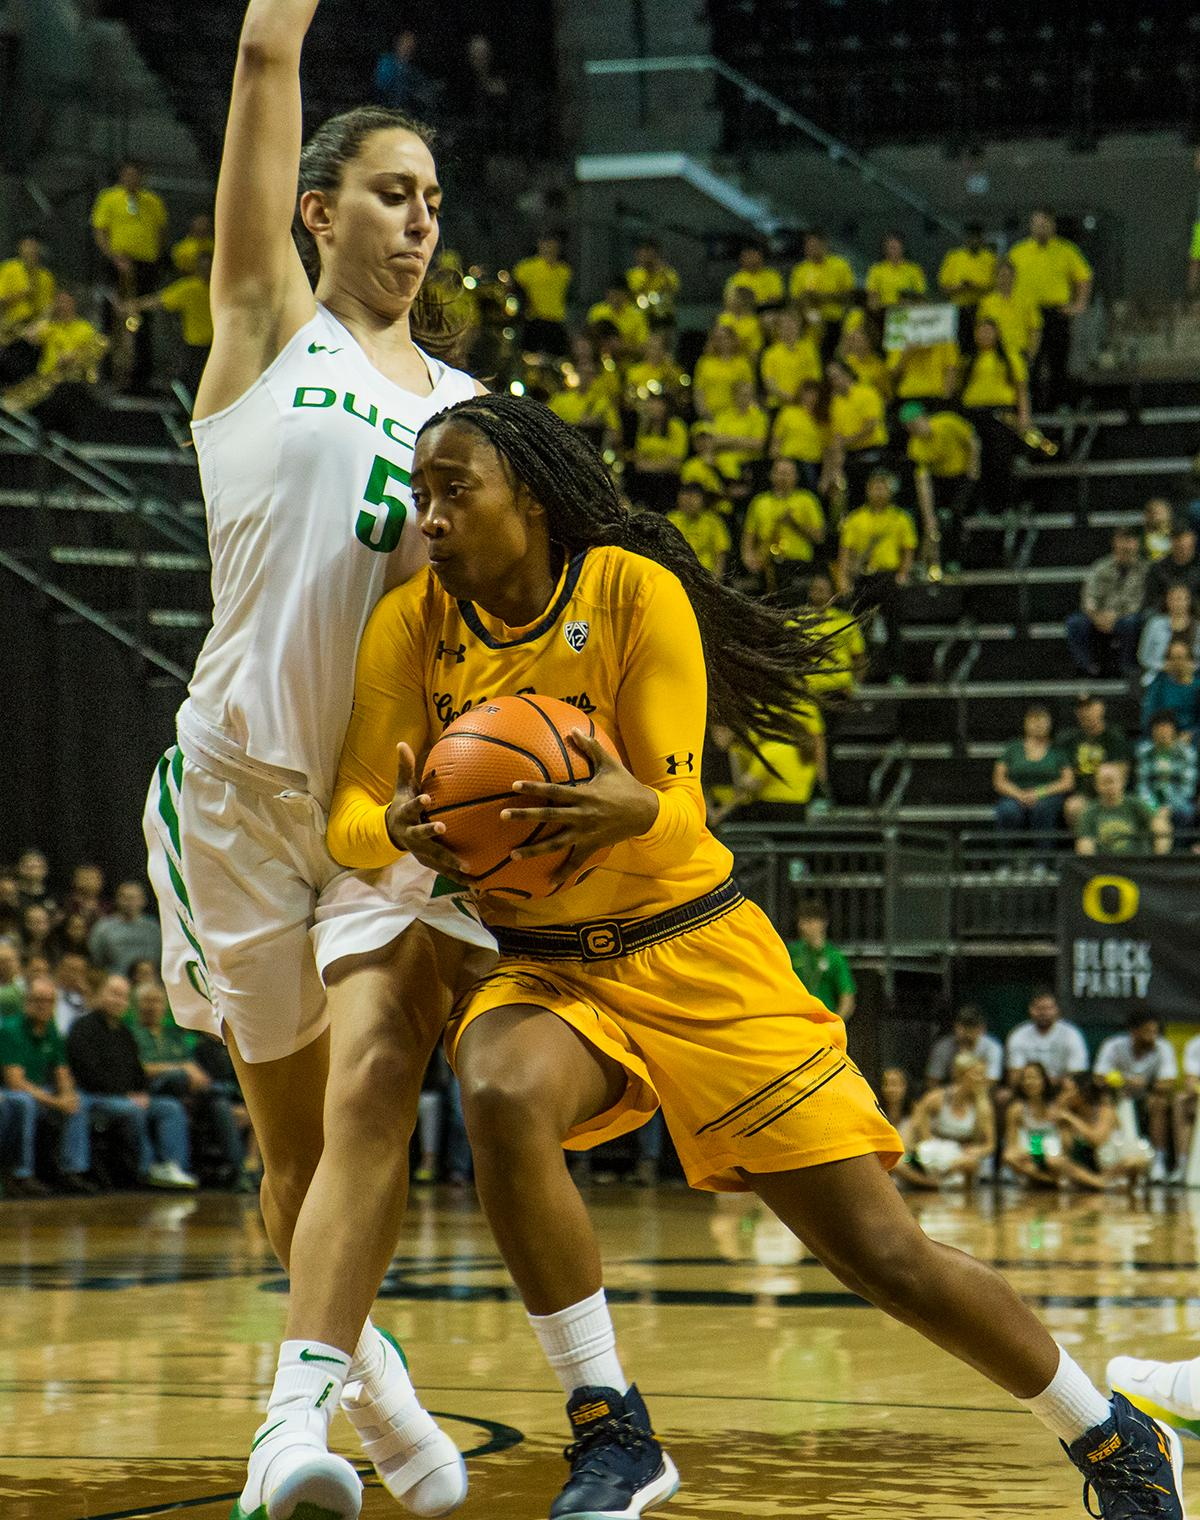 Cal Bears Asha Thomas (#1) drives past Oregon Ducks Maite Cazorla (#5) during the 1st quarter. The Oregon Ducks women's team defeated the Cal Golden Bears 91-54 in Matthew Knight Arena Saturday evening. The Ducks had 3 players in double digits: Sabrina Ionescu with 28 points; Ruthy Hebard with 18 points; and Satou Sabally with 10 points. The Ducks now stand at 10-1 in conference play and Cal drops to 6-5. Photo by Kezia Setyawan, Oregon News Lab